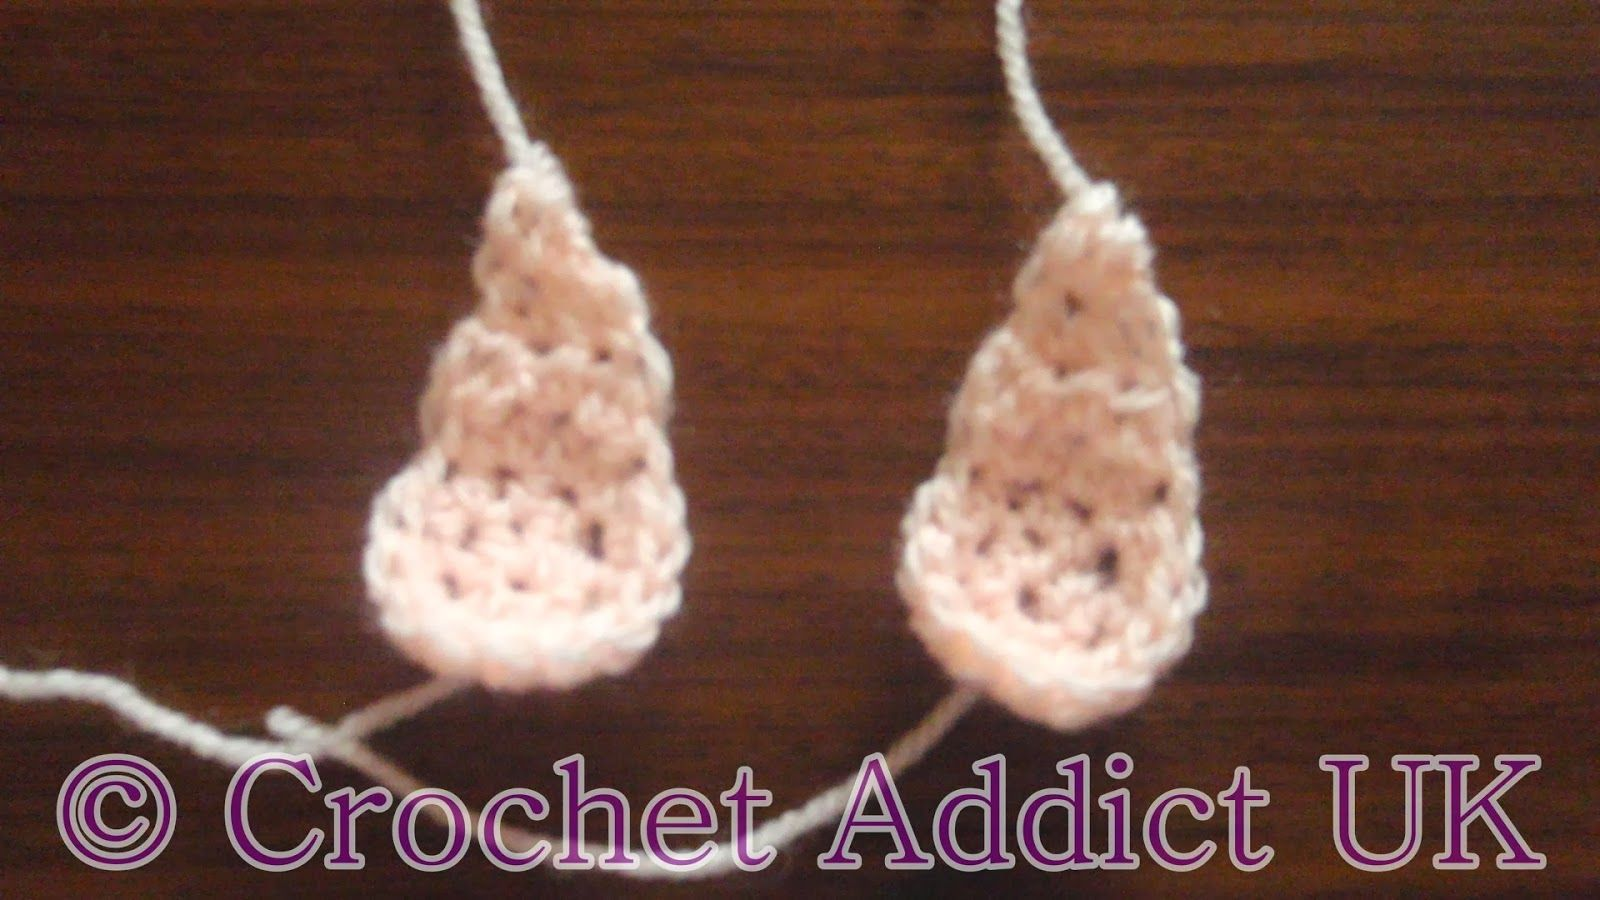 Elf Hat Withwithout Ears 3 Yrs Free Crochet Pattern Addict UK